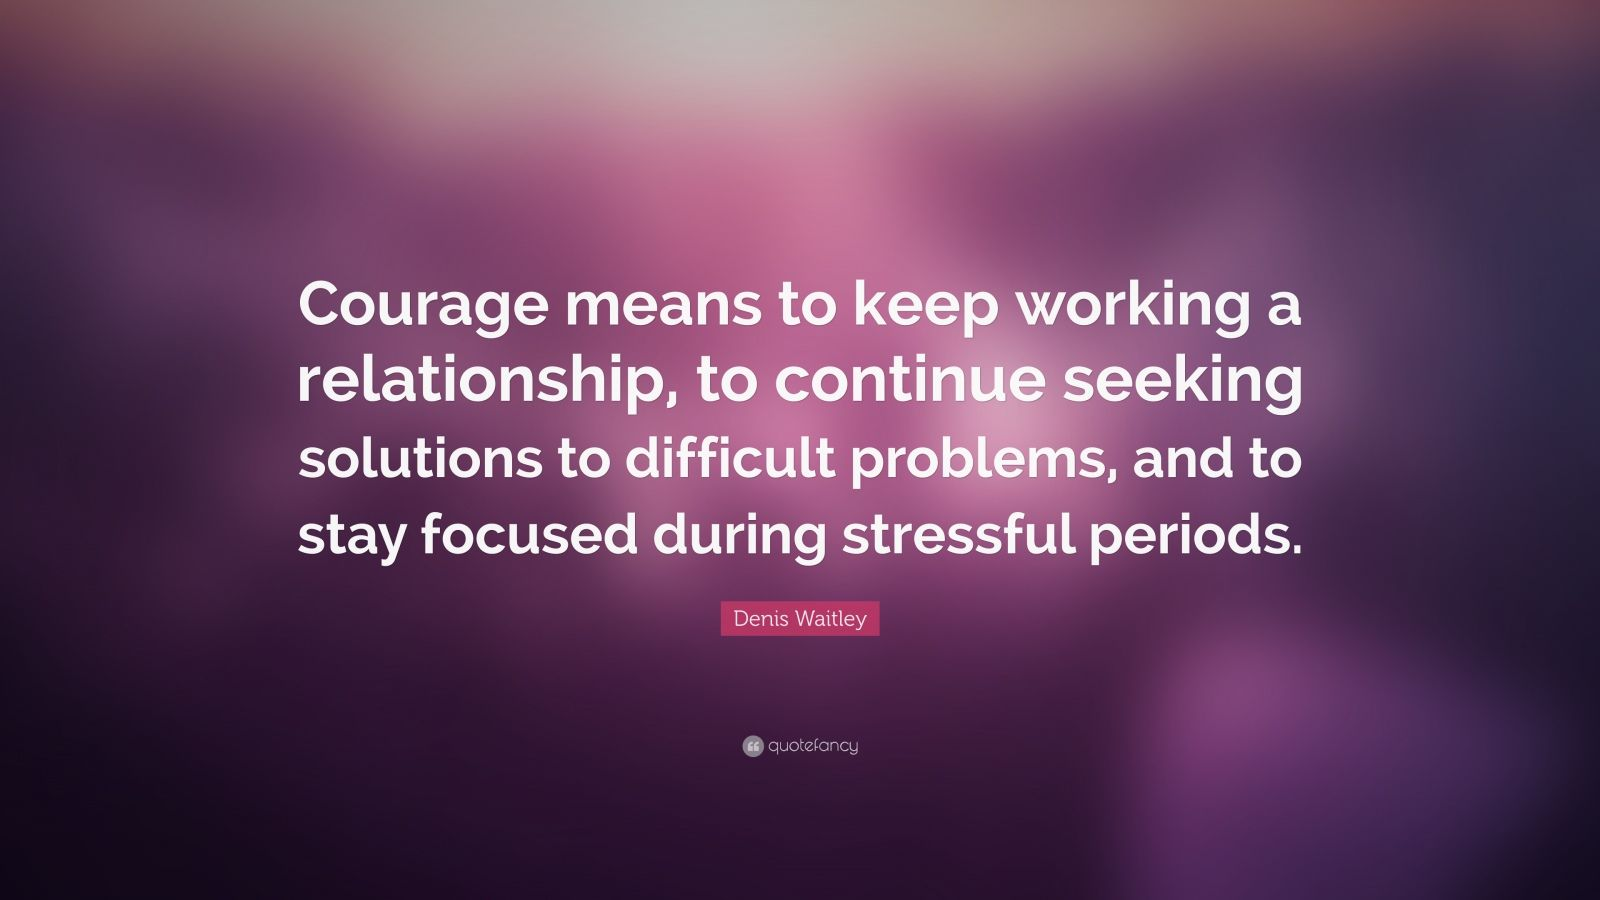 """Denis Waitley Quote: """"Courage means to keep working a relationship, to continue seeking solutions to difficult problems, and to stay focused during stressful periods."""""""